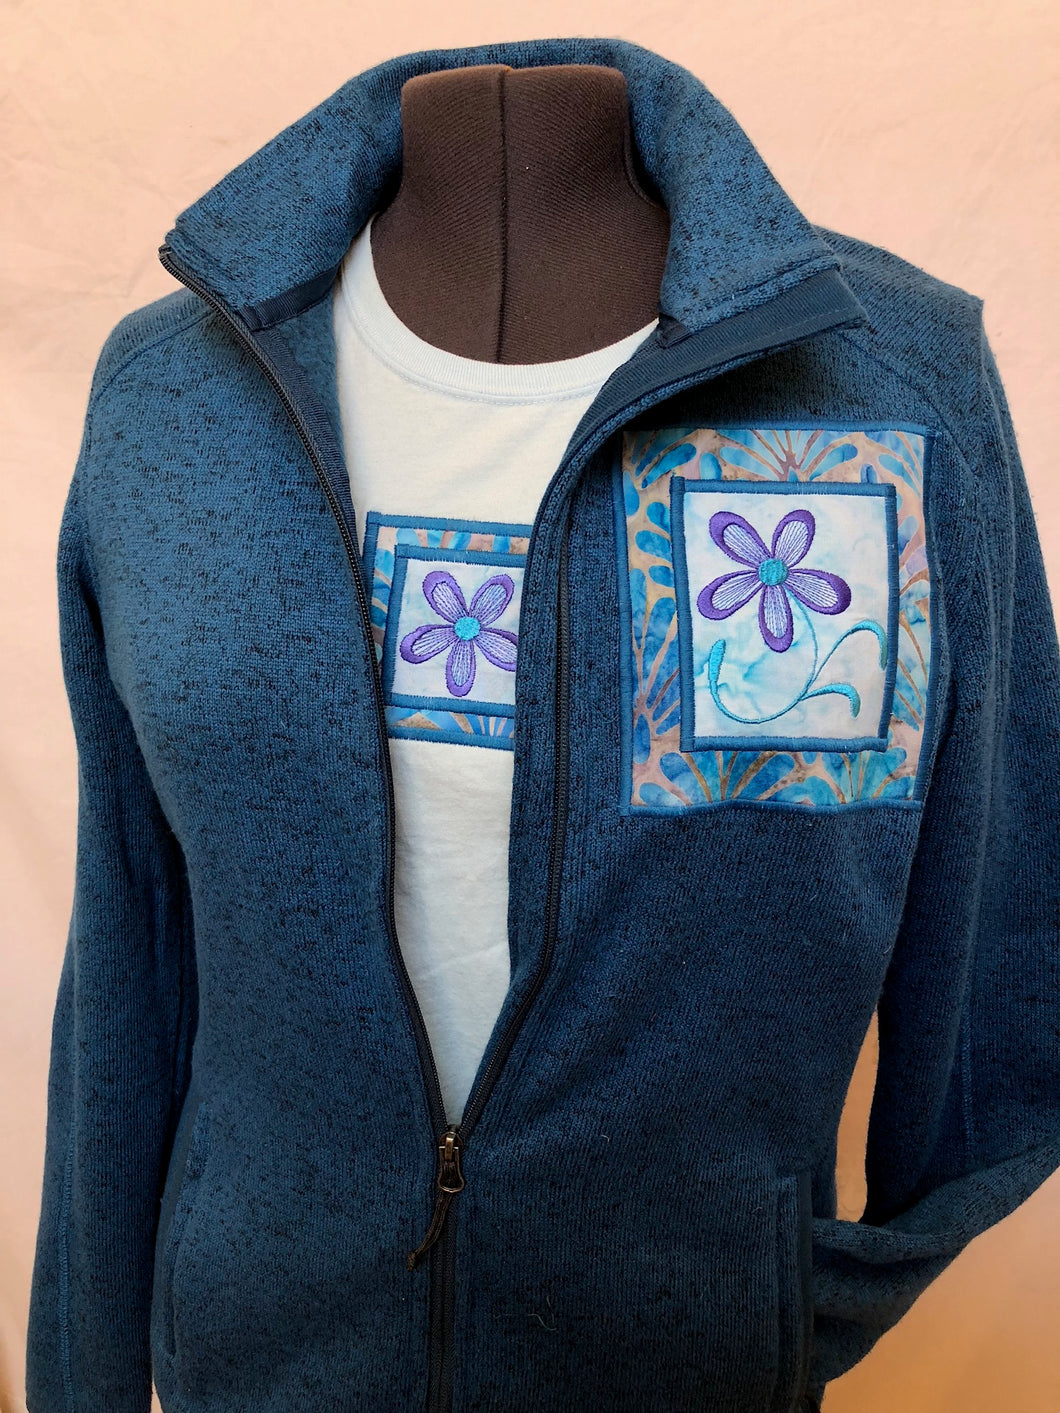 Blue Heather Zip Jacket Matching Short Sleeve T-Shirt